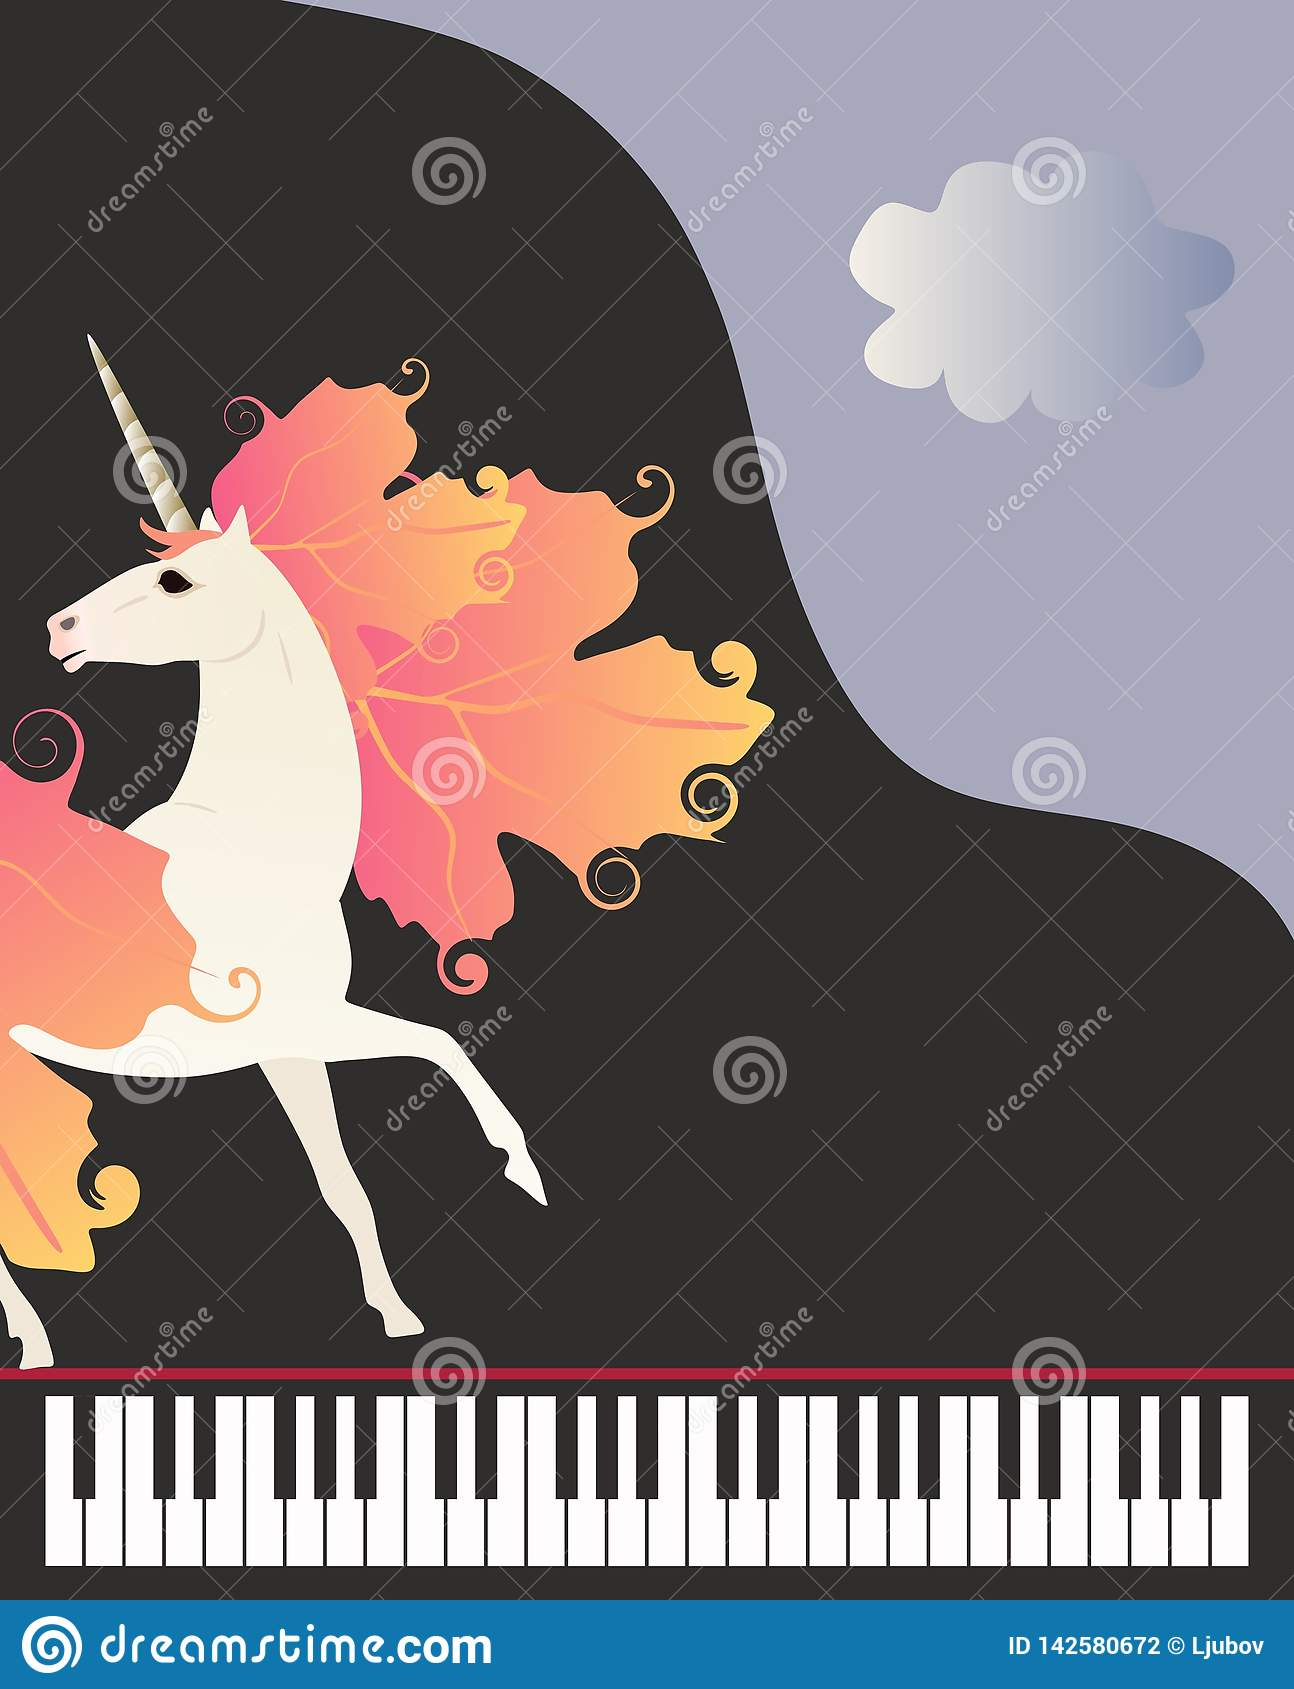 Musical Banner In Vector  Magic Unicorn With Mane In Form Of